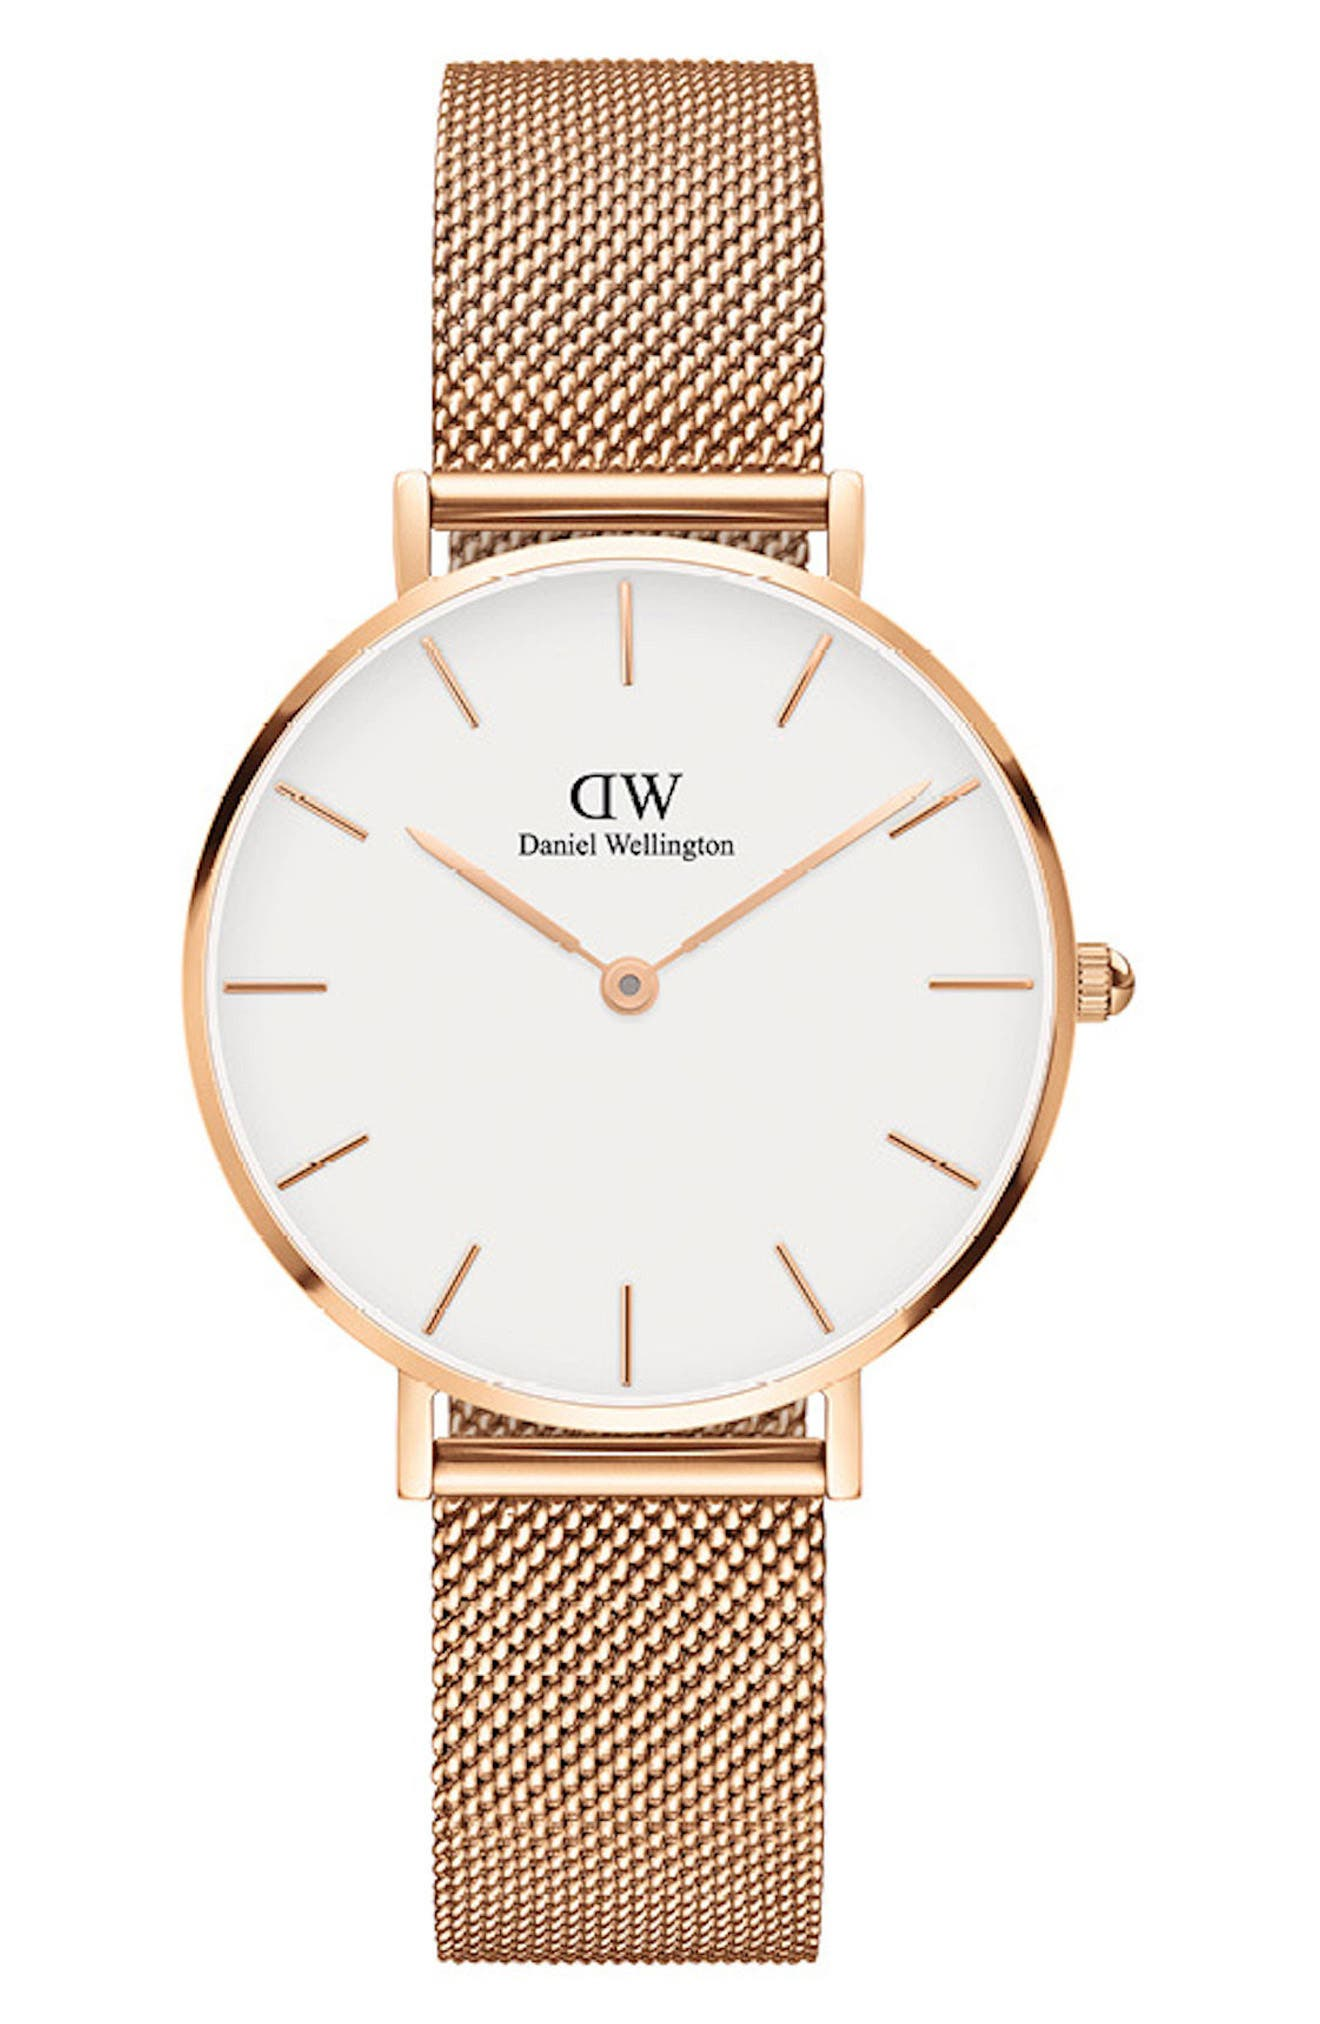 DANIEL WELLINGTON, Classic Petite Mesh Strap Watch, 32mm, Main thumbnail 1, color, ROSE GOLD/ WHITE/ ROSE GOLD